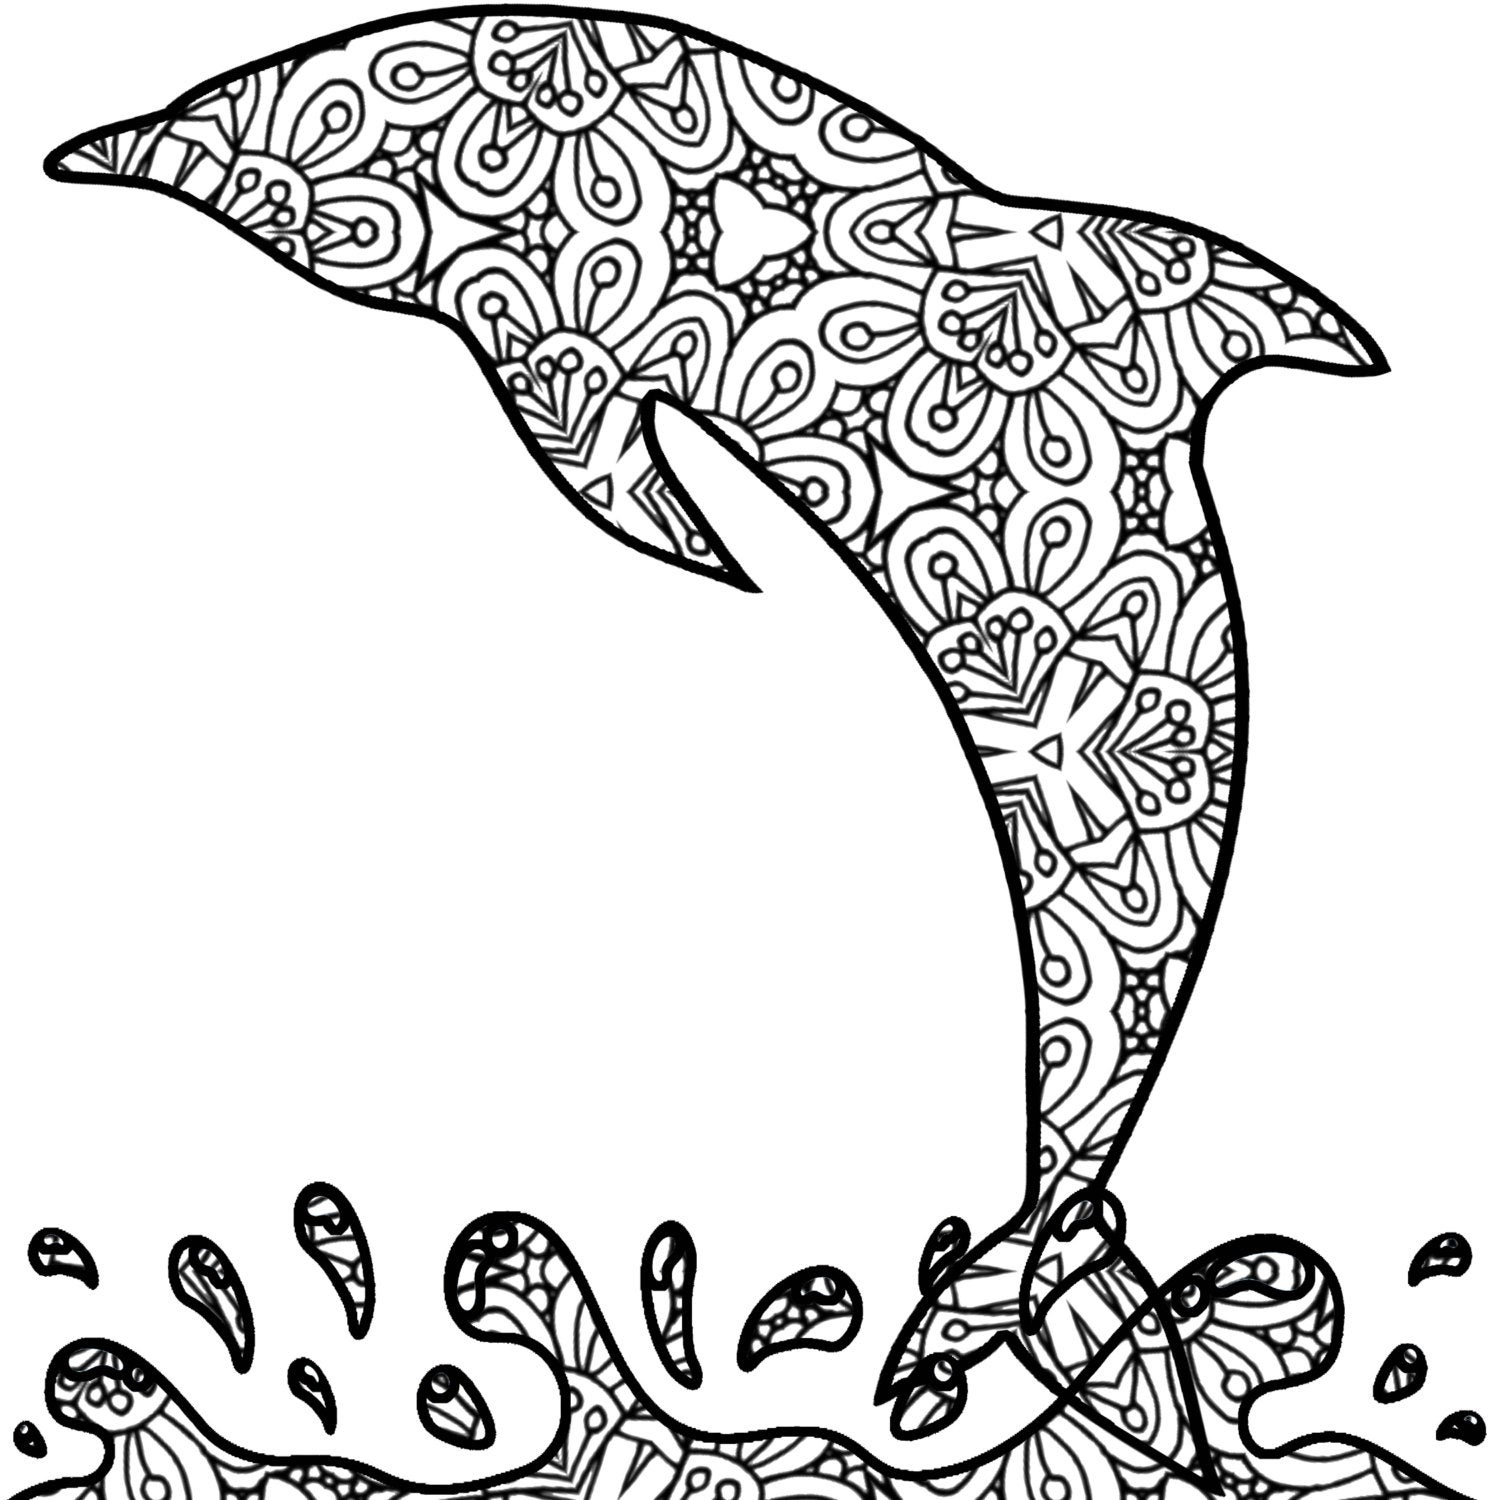 coloring pages dolphin baby dolphin coloring pages coloring pages to download dolphin coloring pages